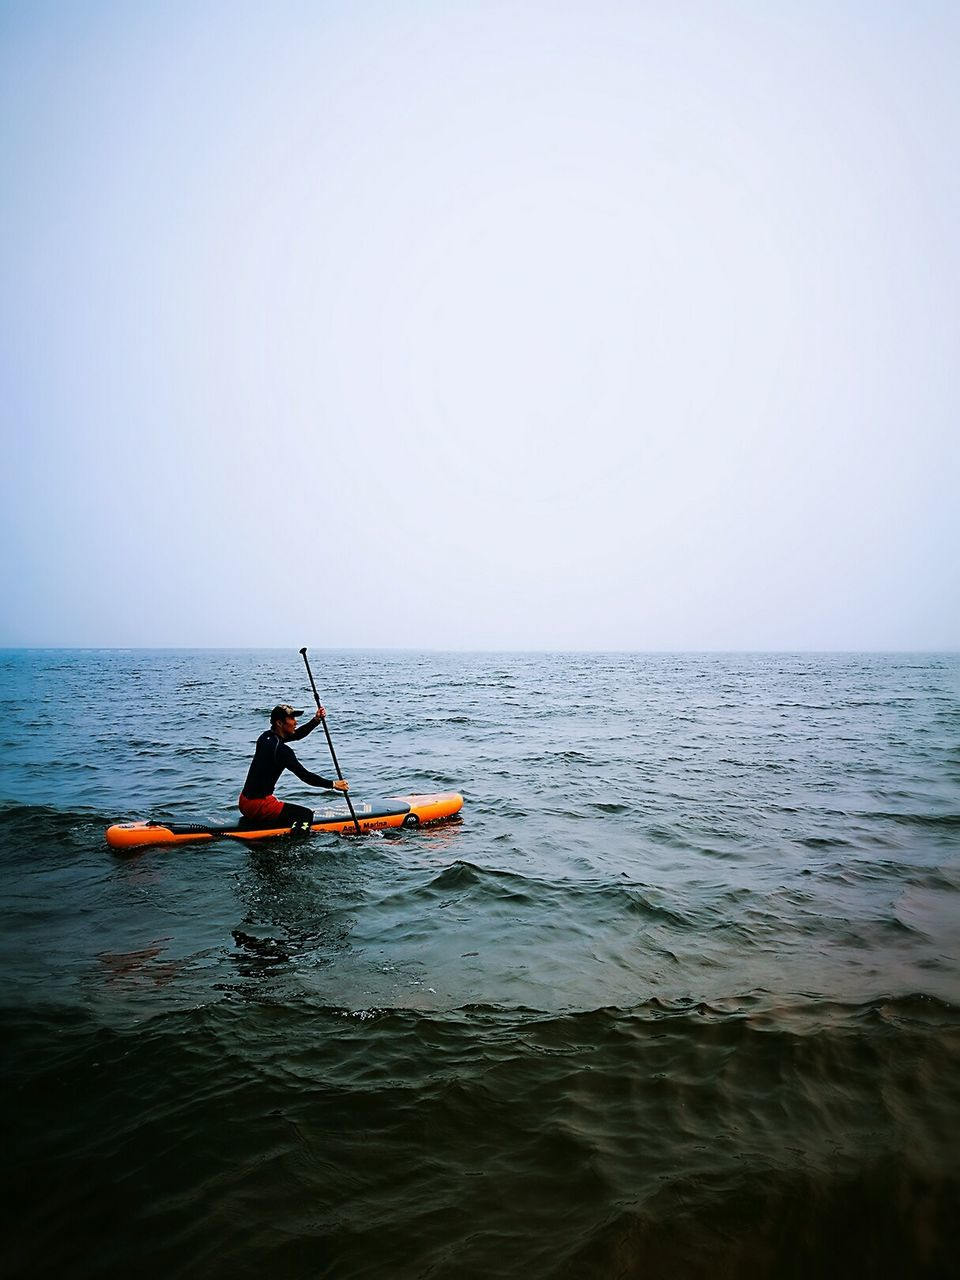 sea, water, oar, horizon over water, copy space, one person, men, outdoors, transportation, nature, nautical vessel, scenics, real people, sitting, day, adventure, clear sky, kayak, one man only, rowing, sky, beauty in nature, adult, only men, people, adults only